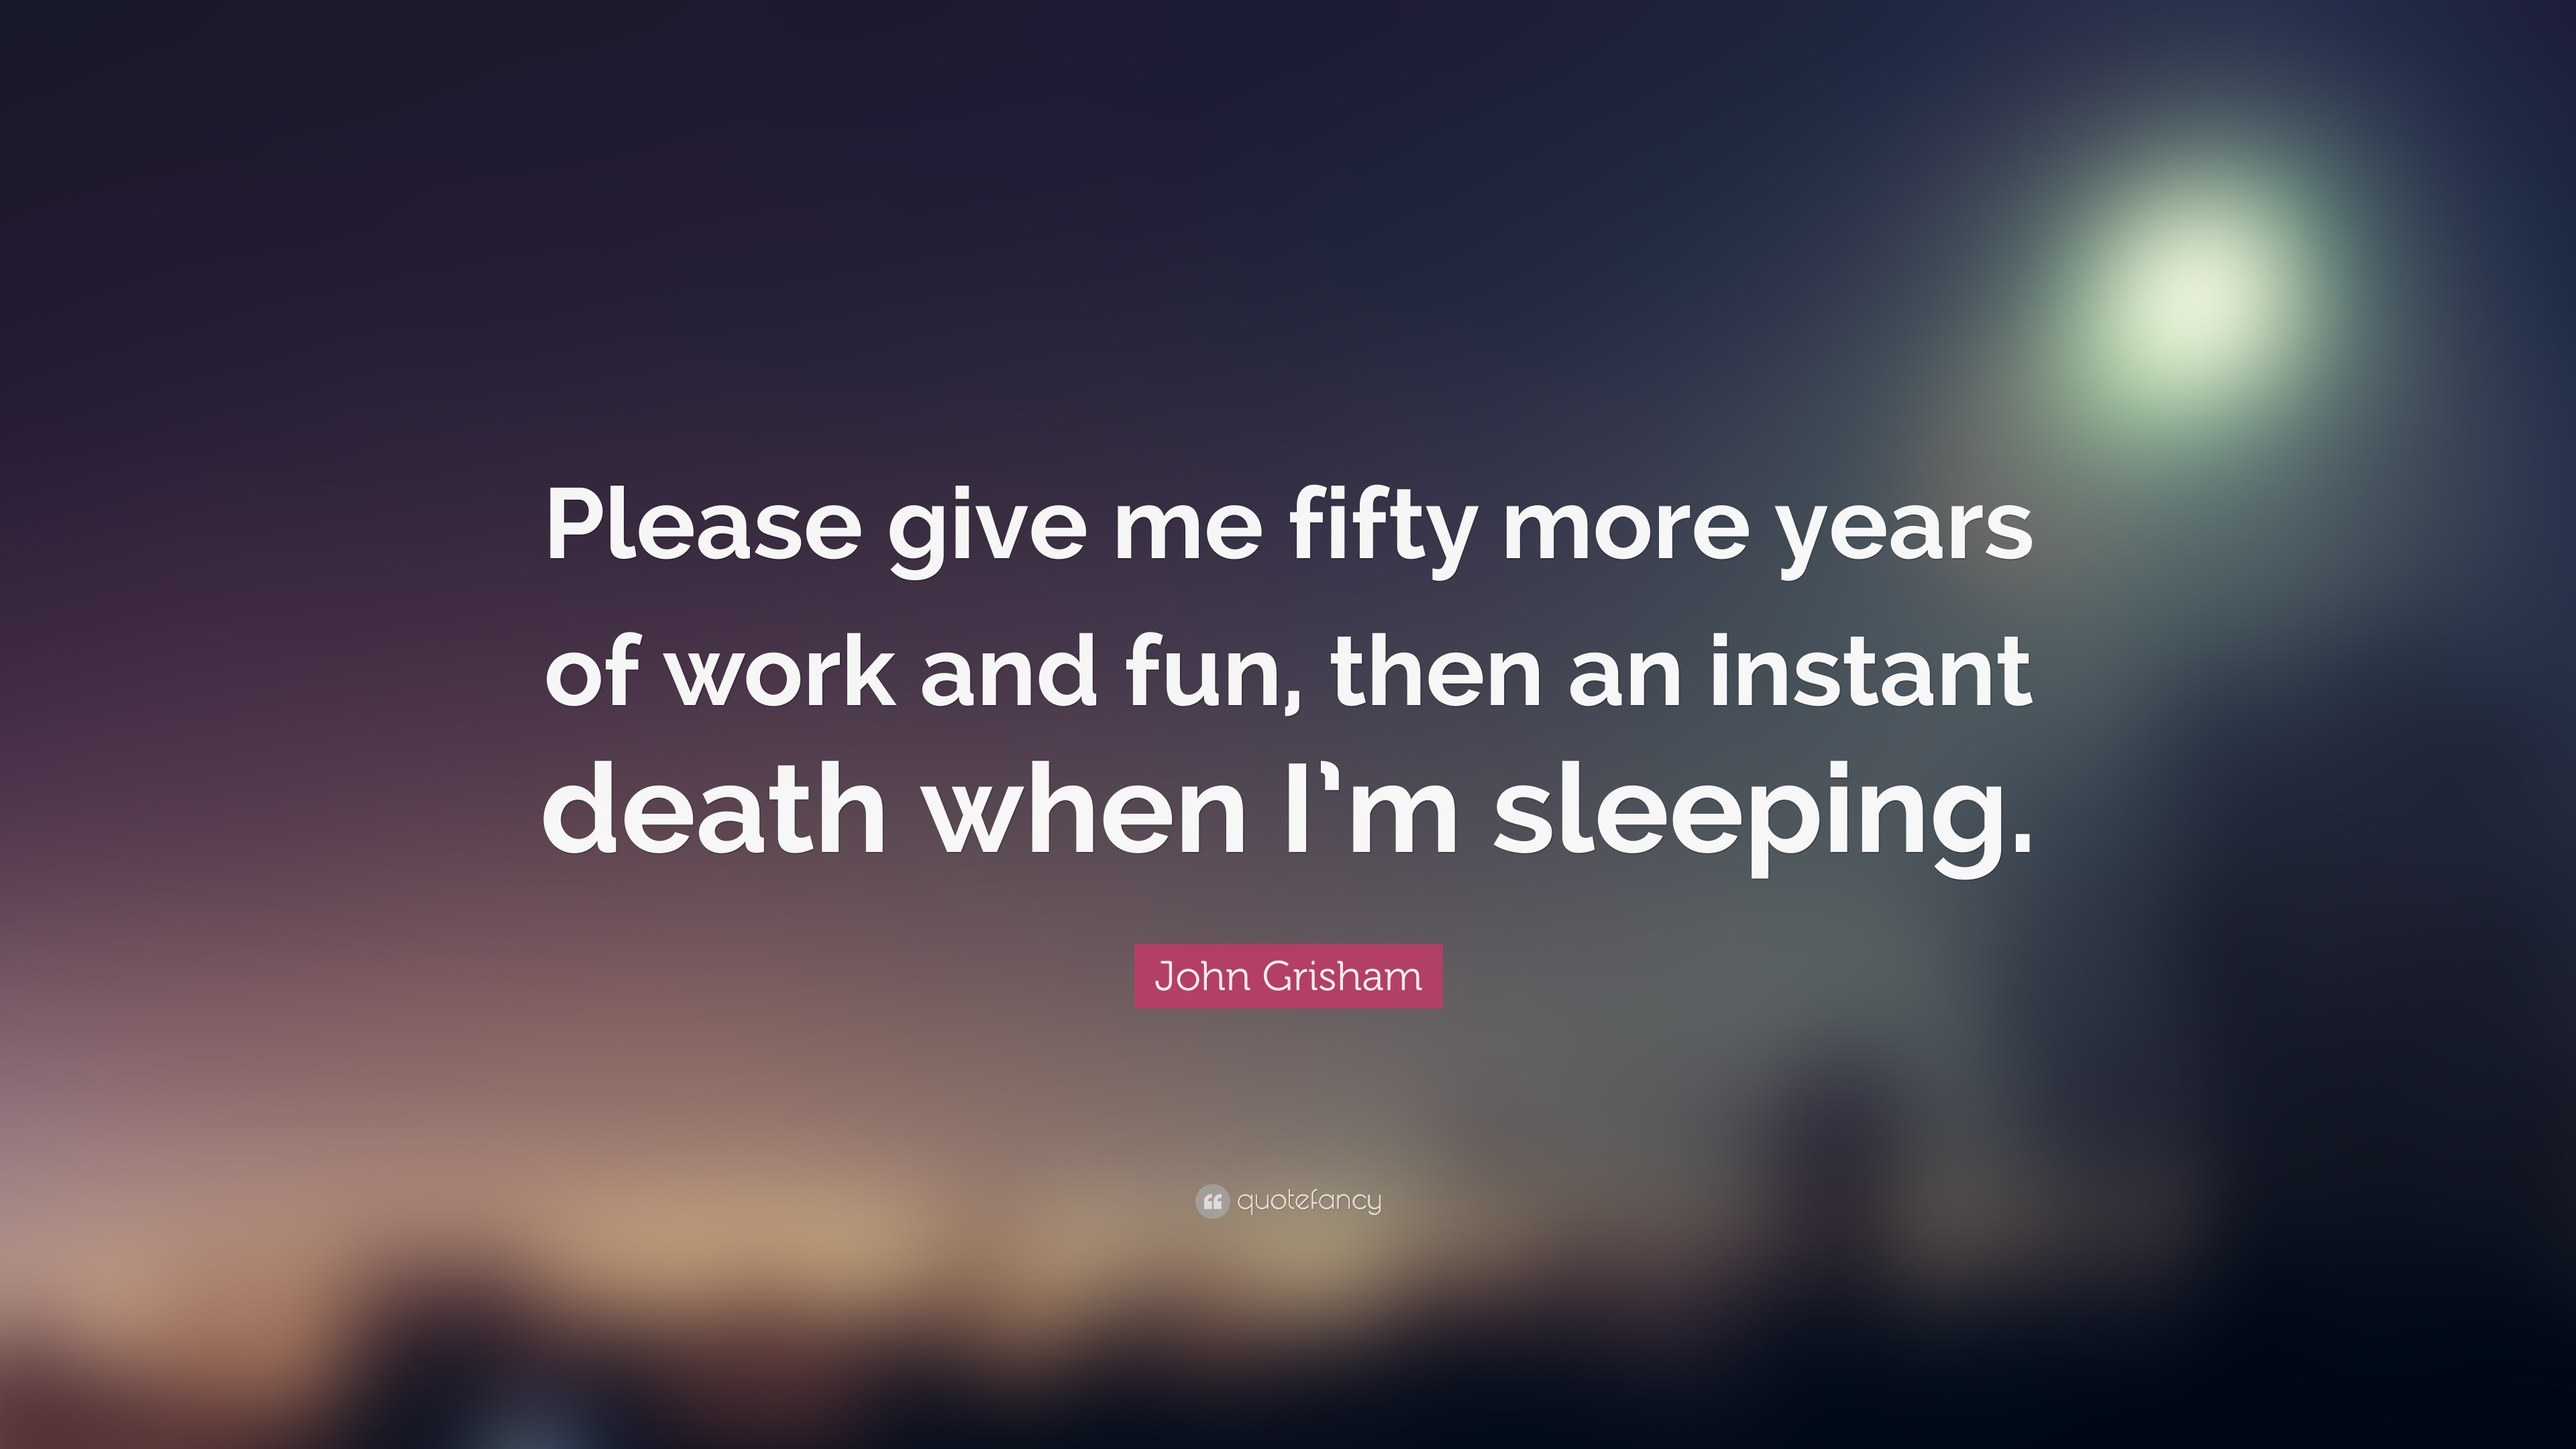 John Grisham Quote Please Give Me Fifty More Years Of Work And Fun